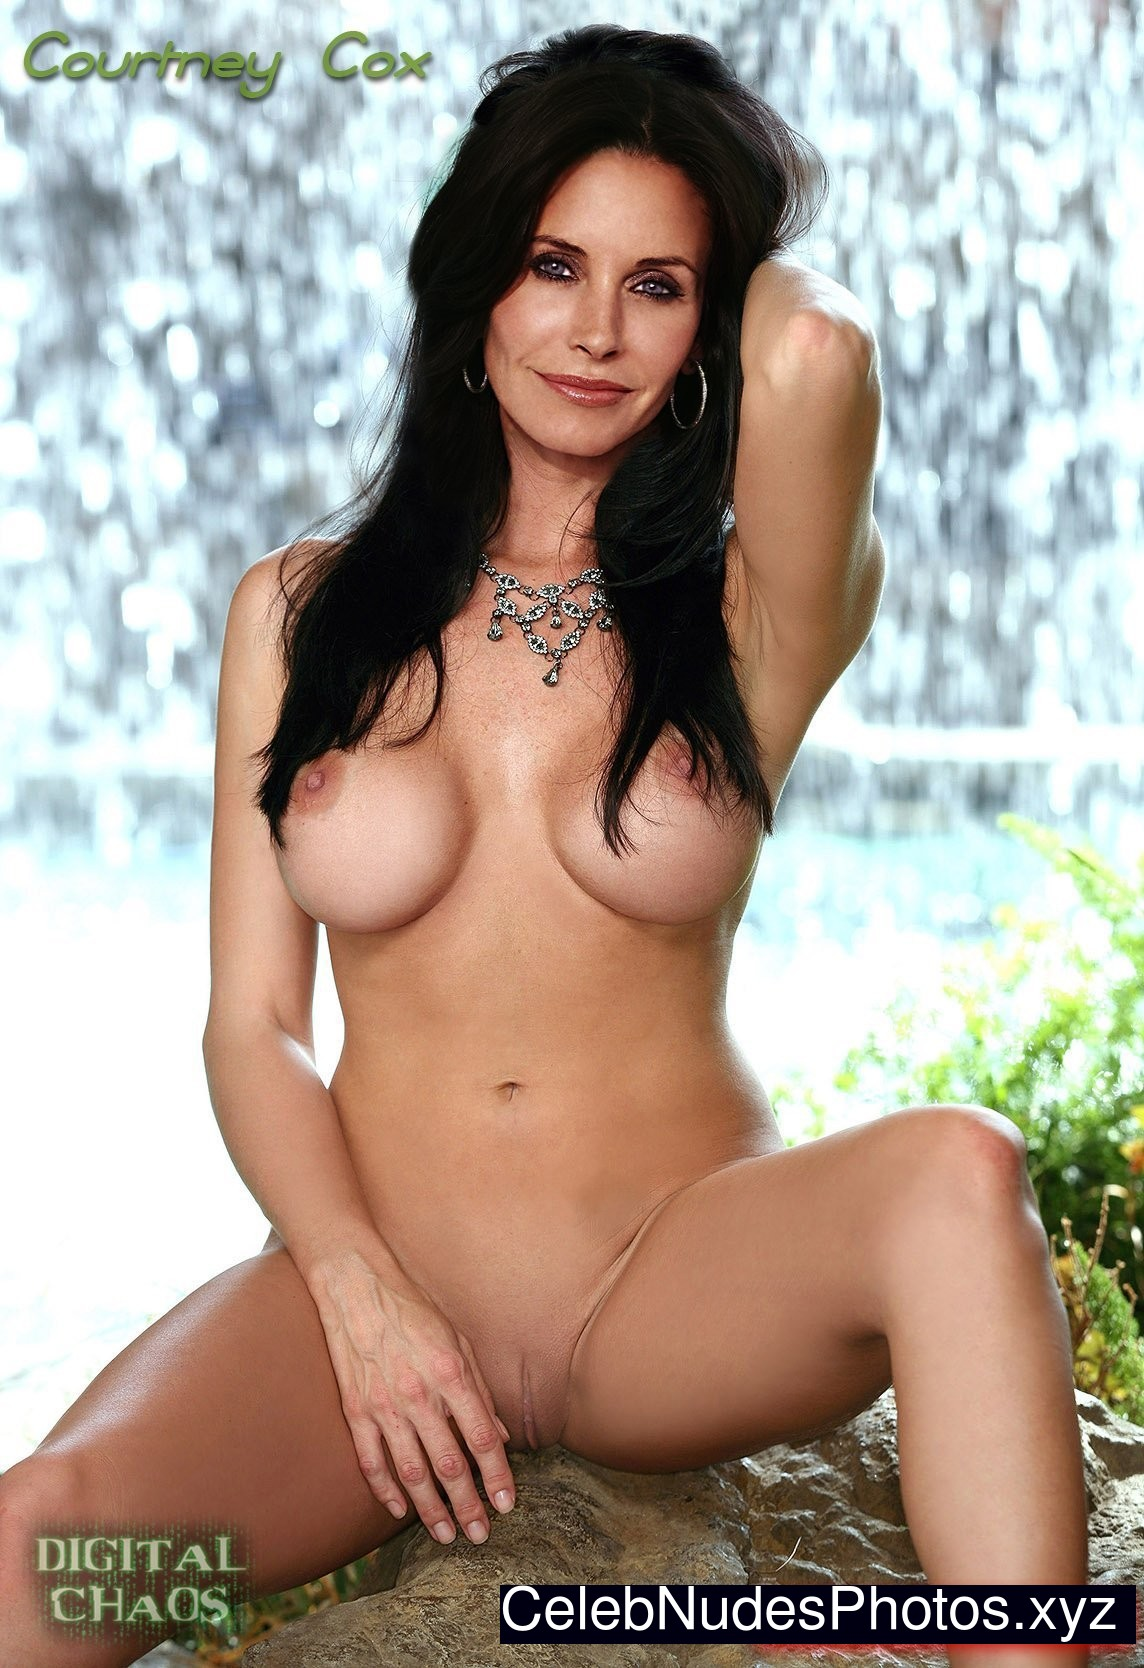 Porn nude fakes Courtney cox